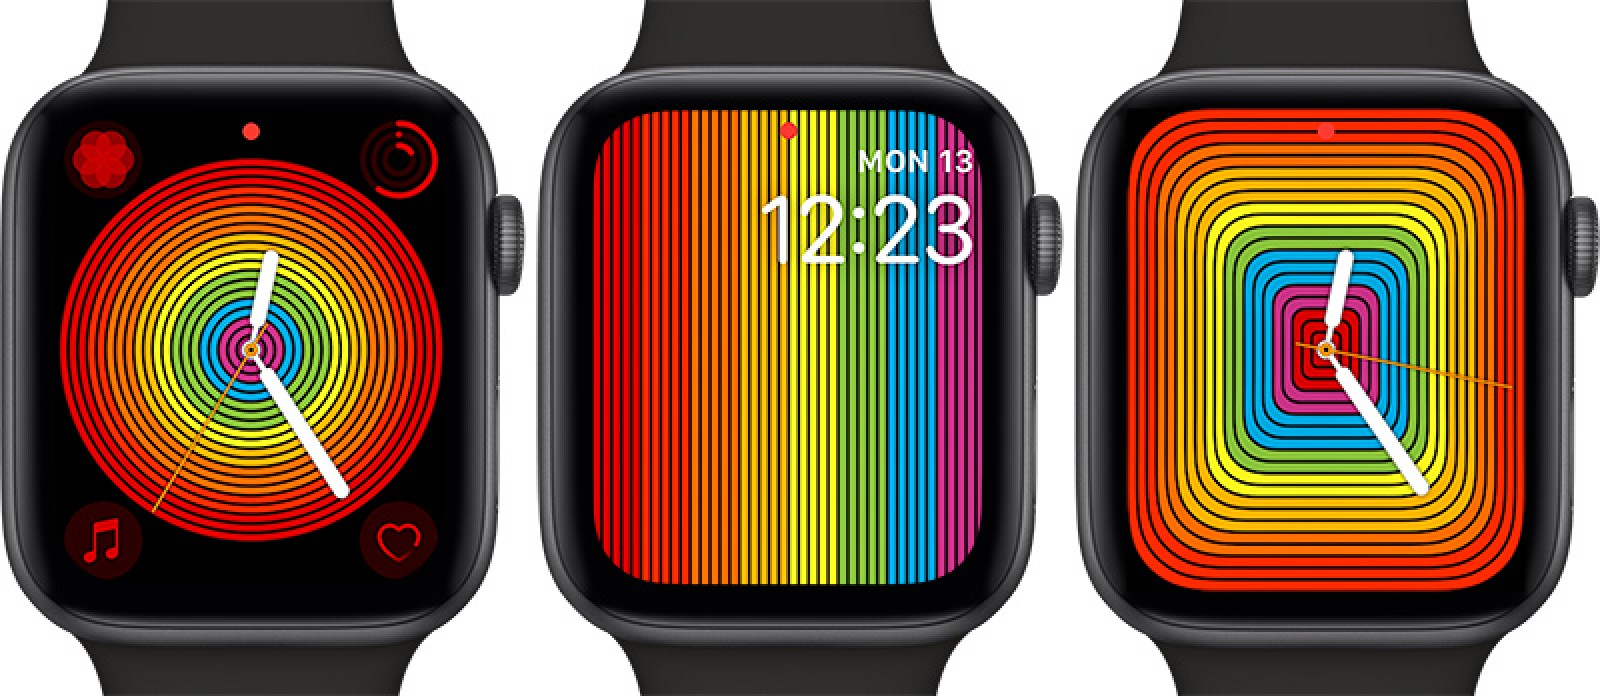 "Apple Watch gets New Version of ""Pride"" Display in watchOS 5.2.1"